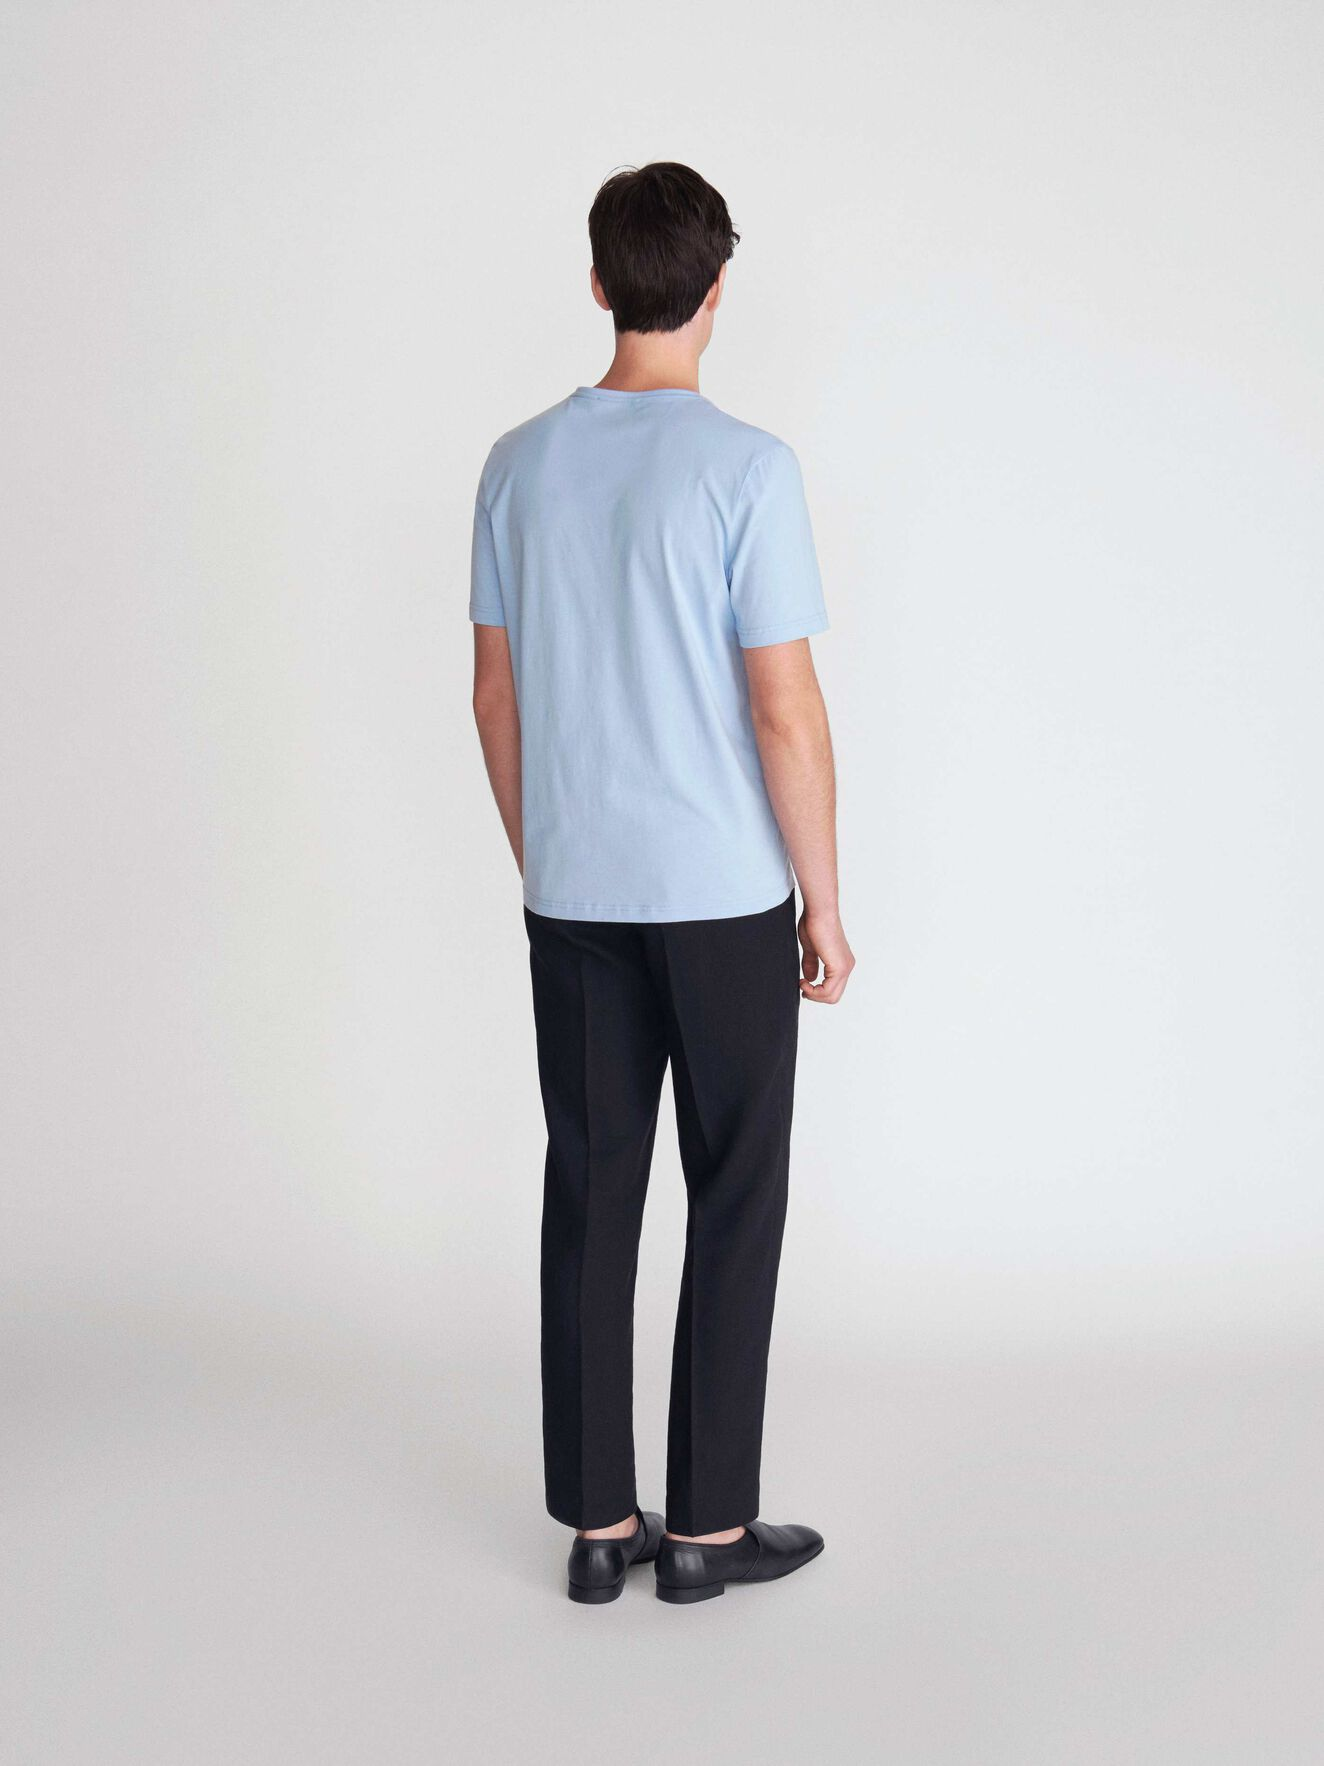 Didelot T-Shirt in Airy Blue from Tiger of Sweden